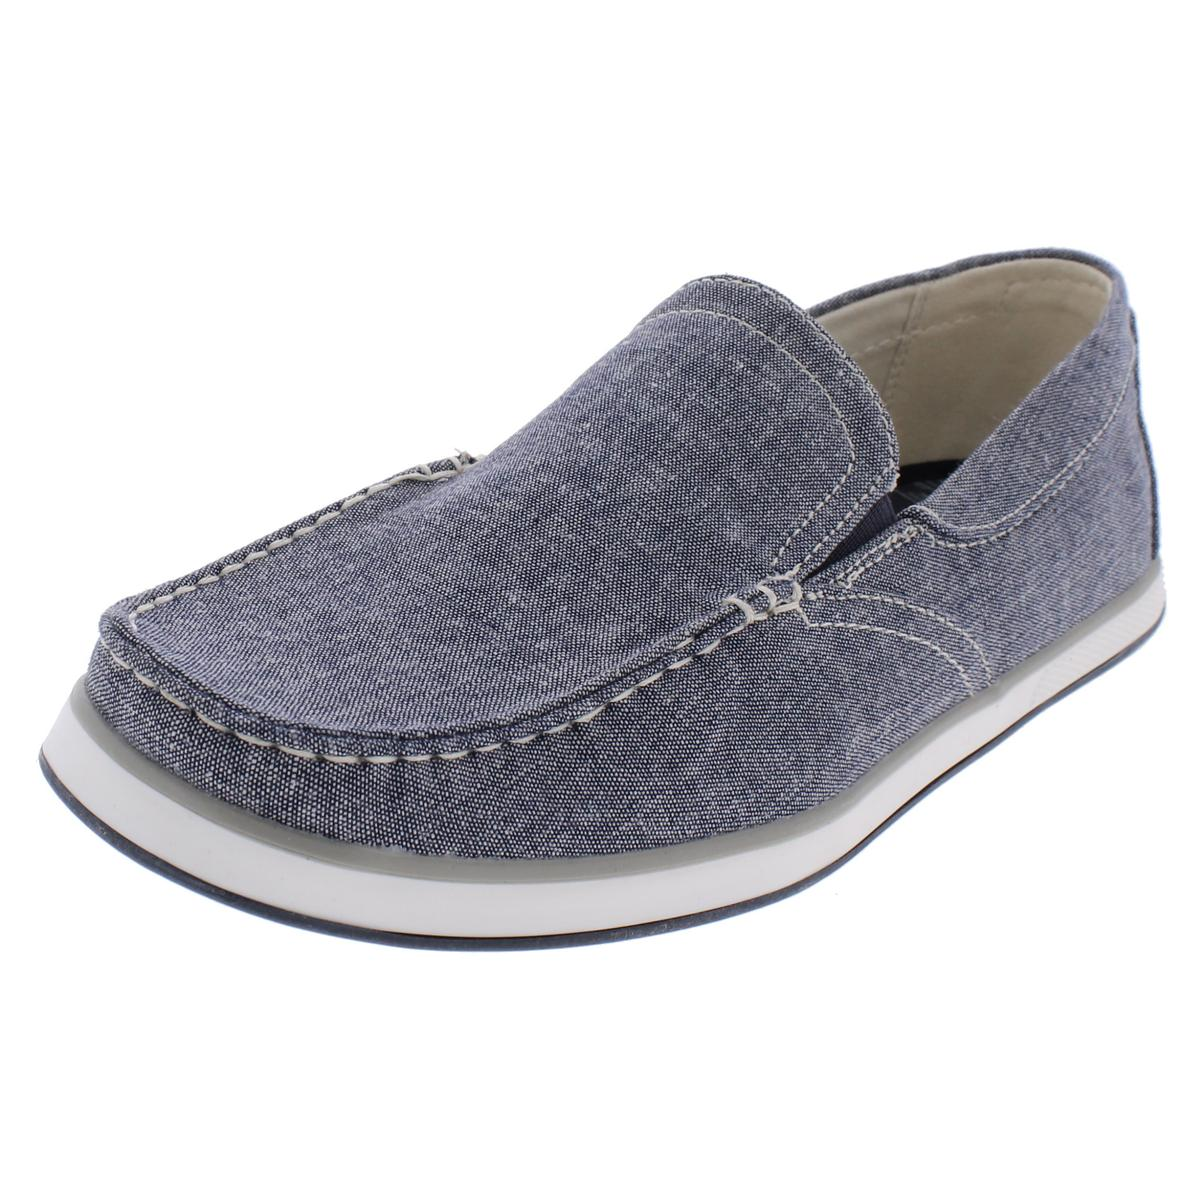 GBX Mens Siesta Canvas Loafer Slip-On Shoes by GBX